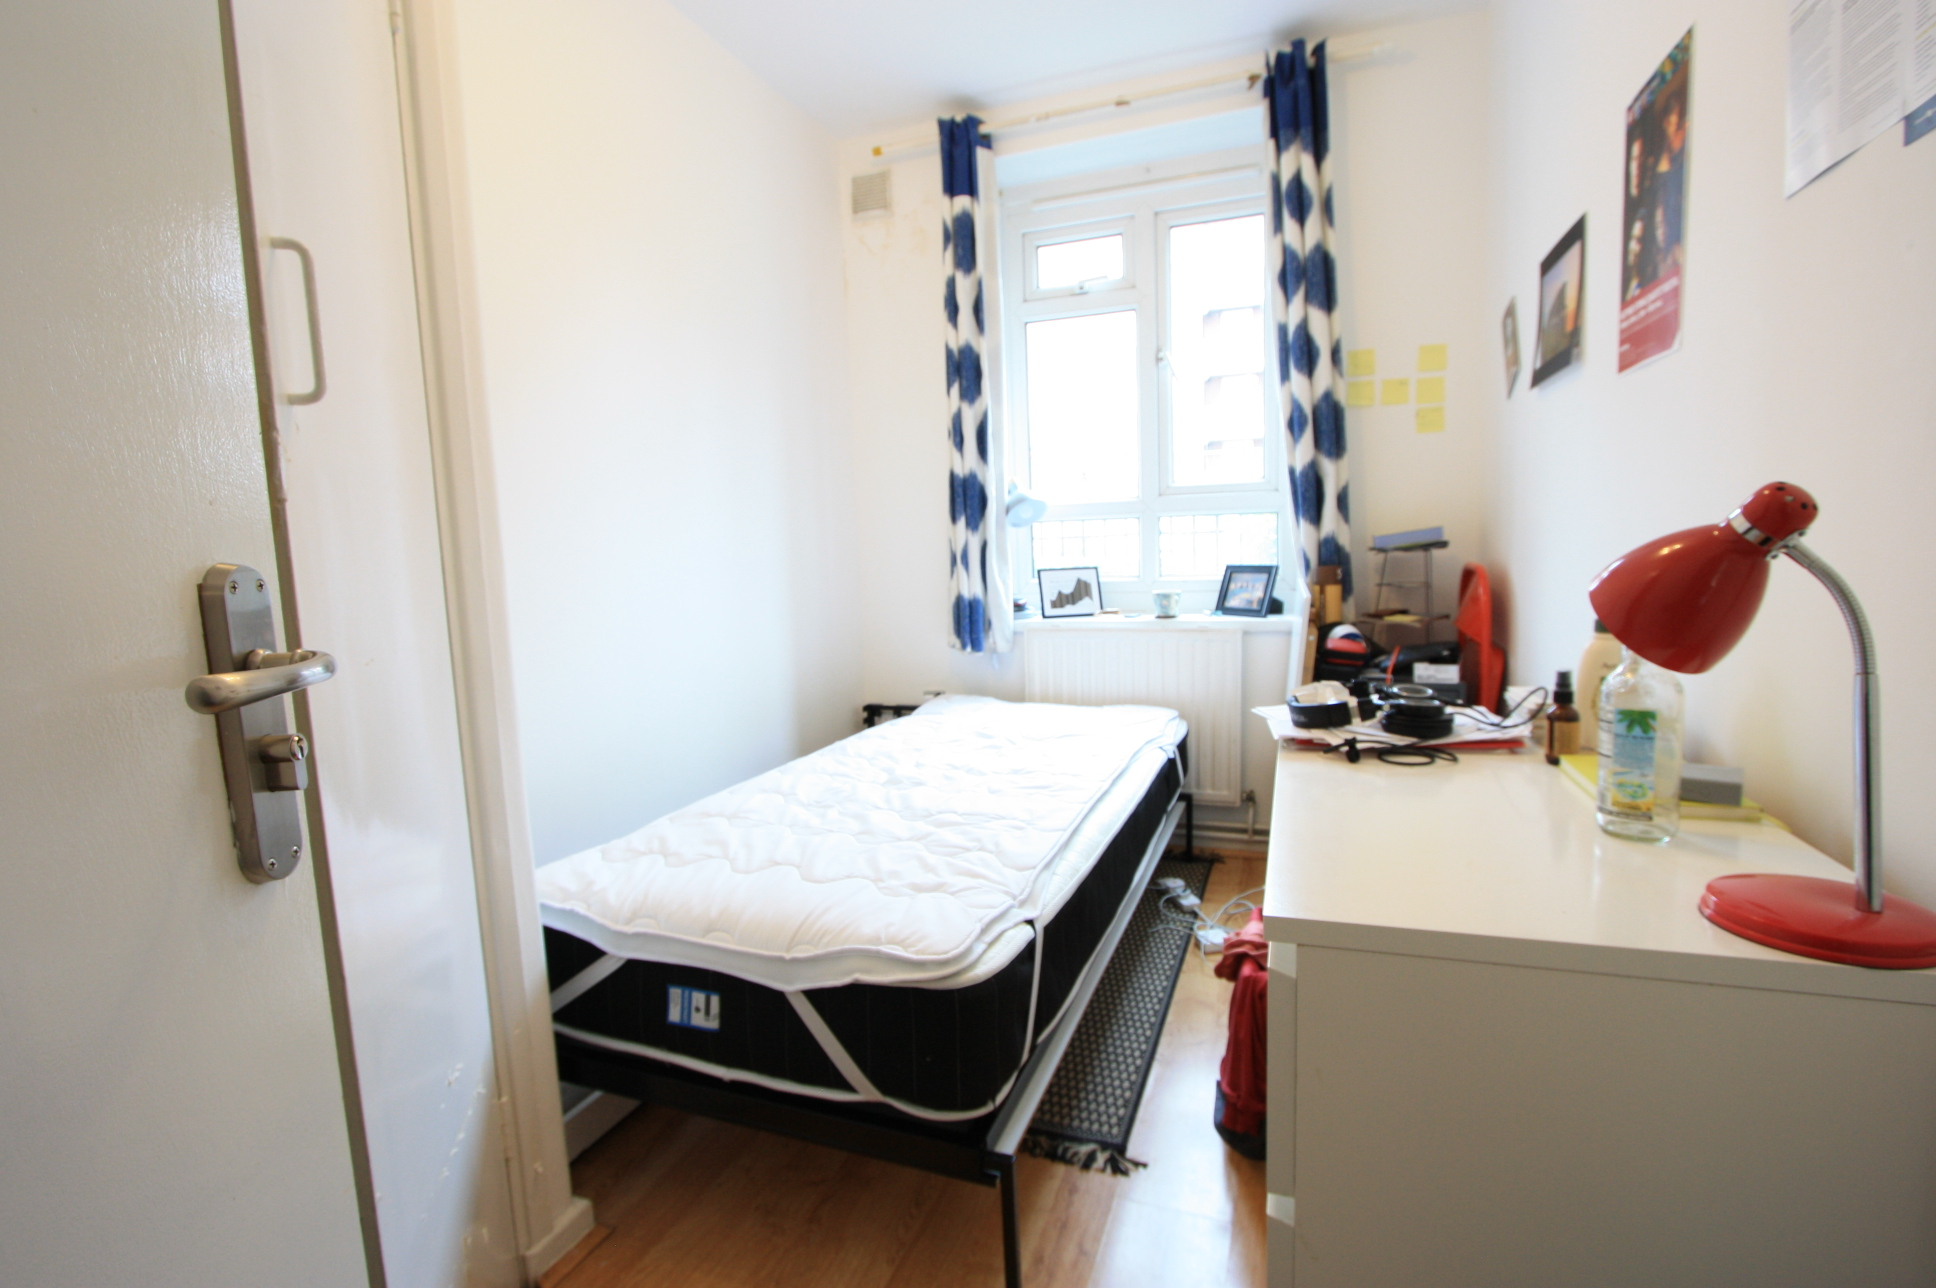 4 bed flat rent Maurice House, Stockwell SW9